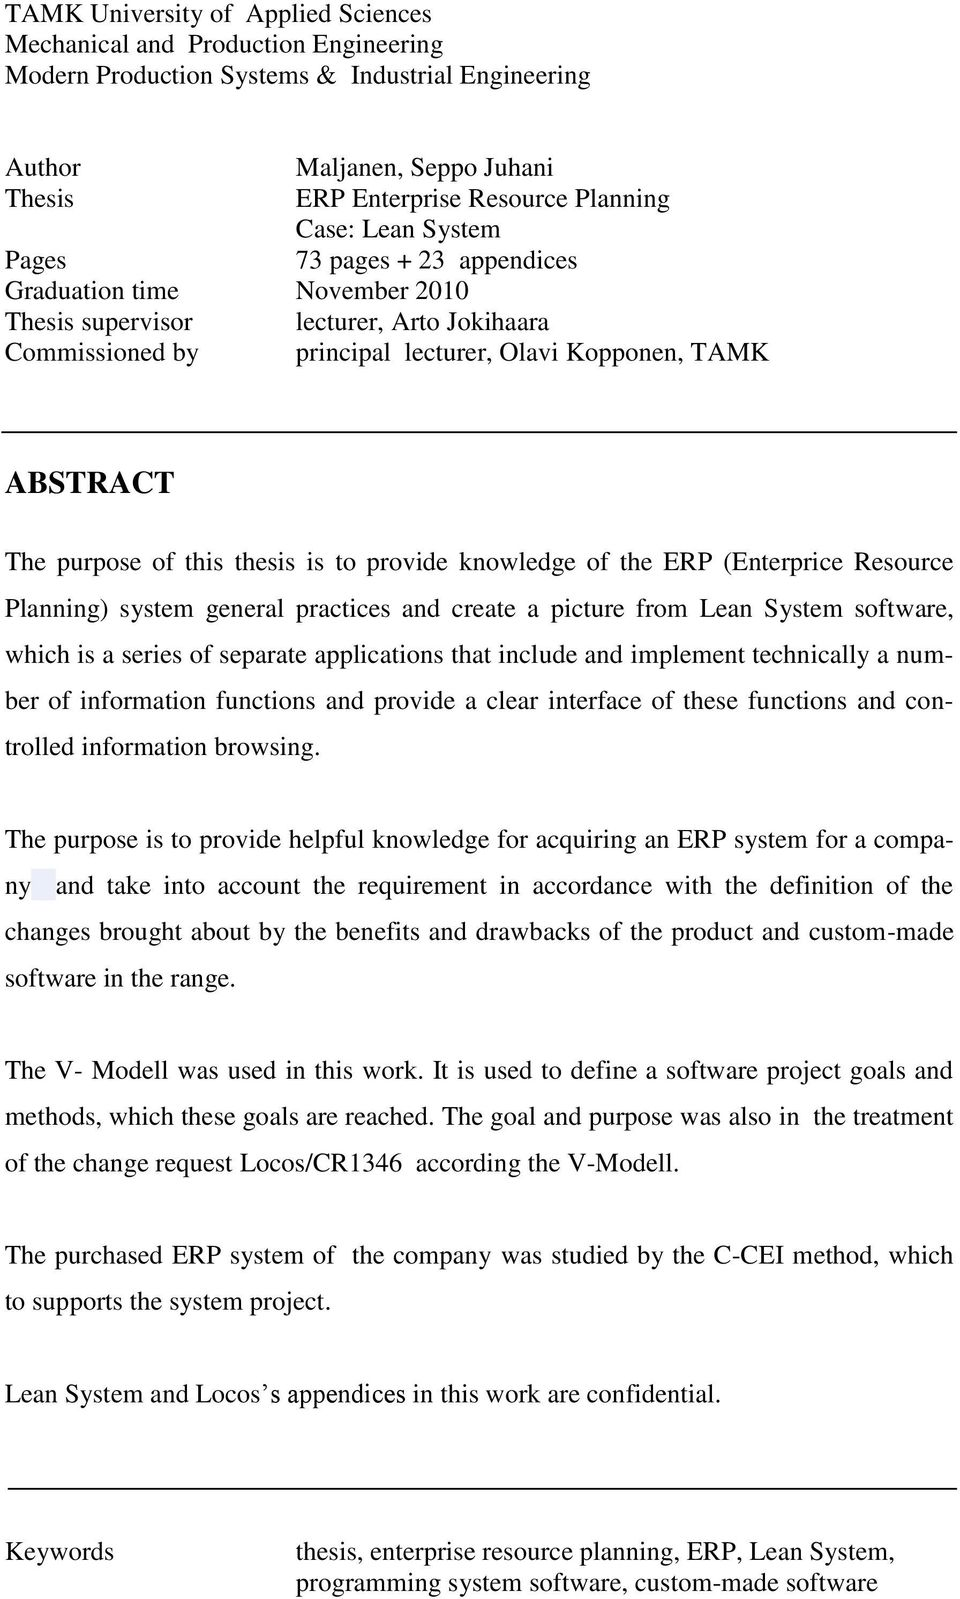 of this thesis is to provide knowledge of the ERP (Enterprice Resource Planning) system general practices and create a picture from Lean System software, which is a series of separate applications